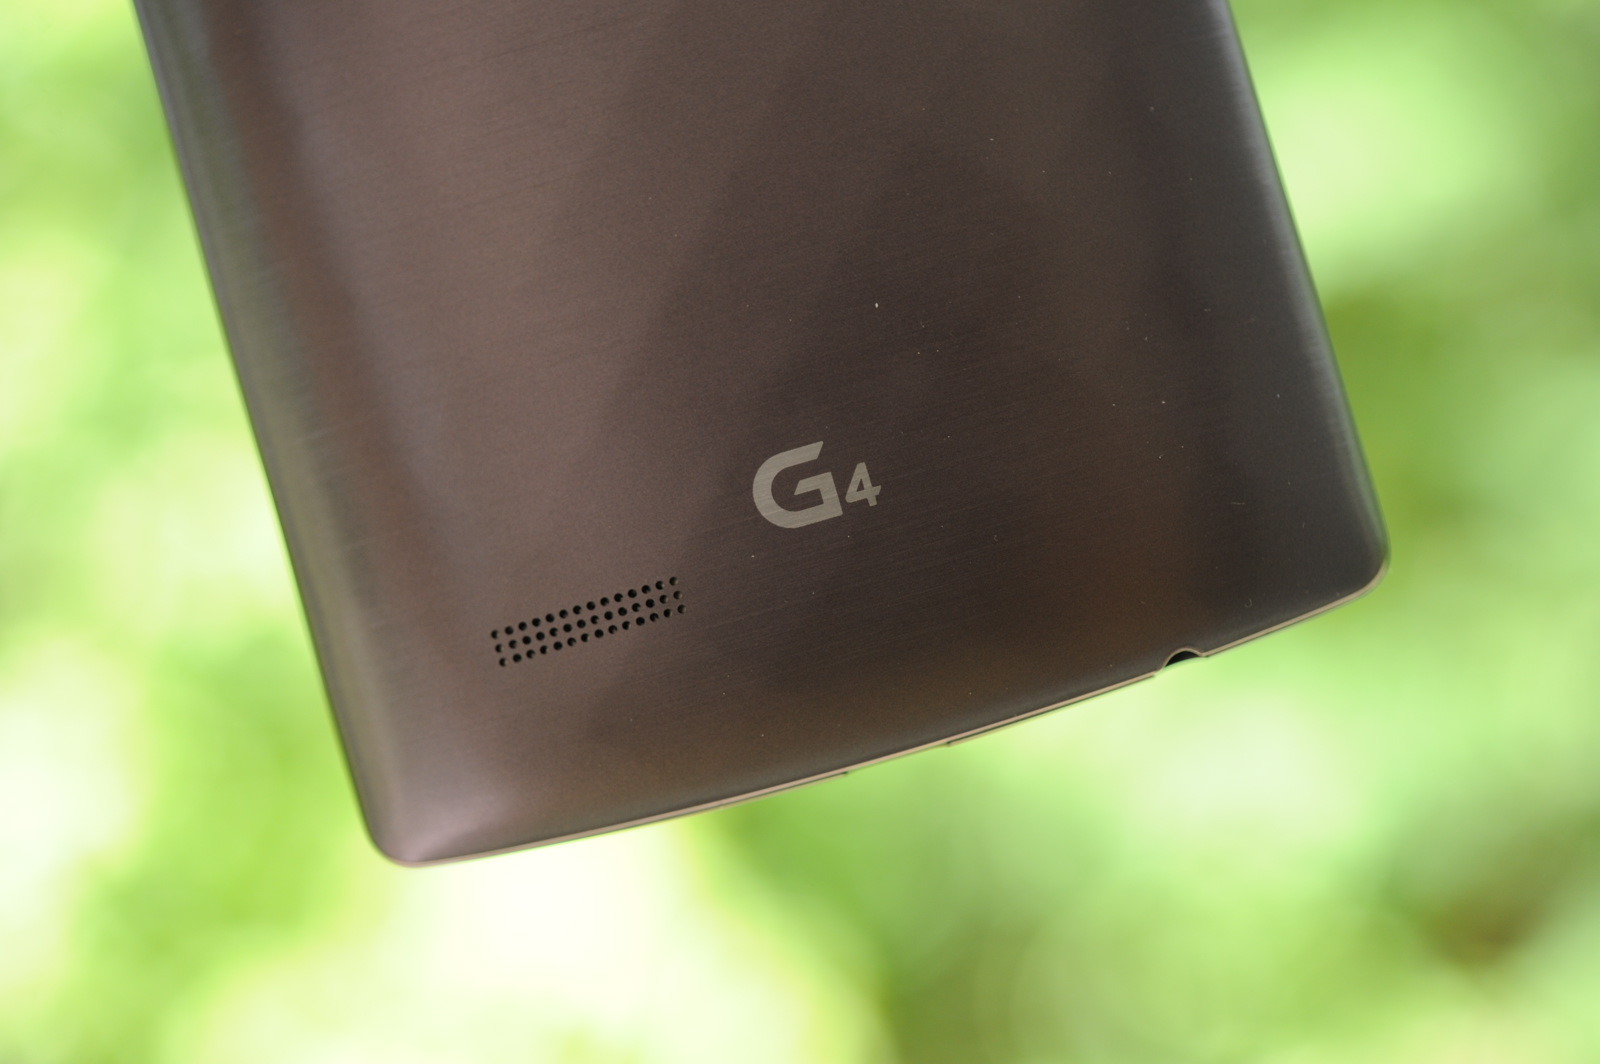 LG G4 Review: A Competent, Capable Android Alternative